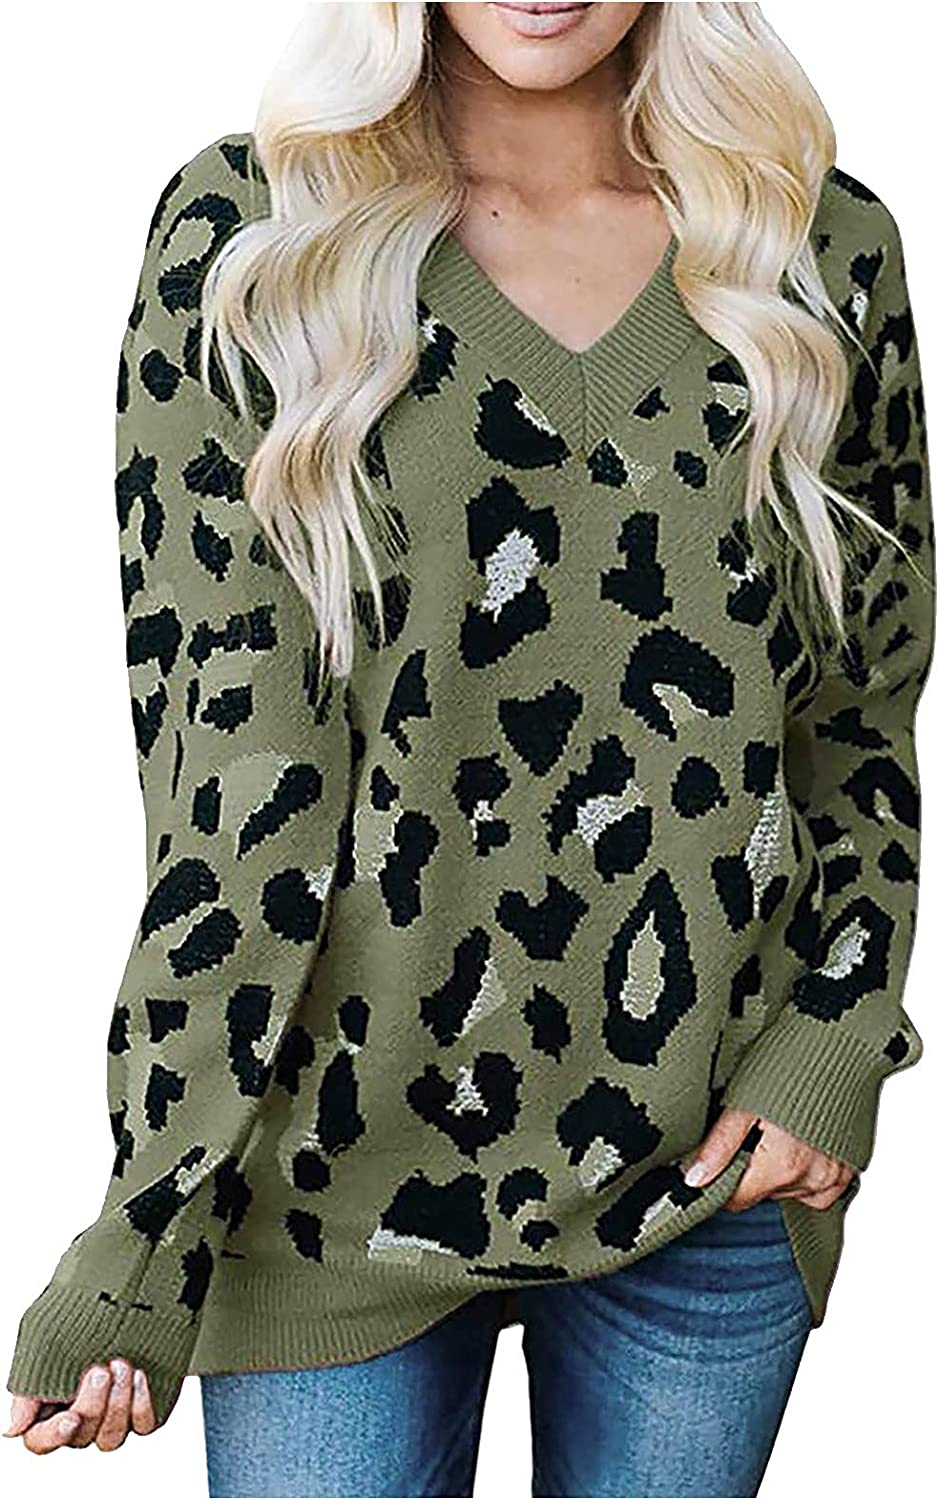 Women Phoenix Mall Leopard Ranking TOP9 Print Jacquard V-Neck Loose S Knitted Long Sweater